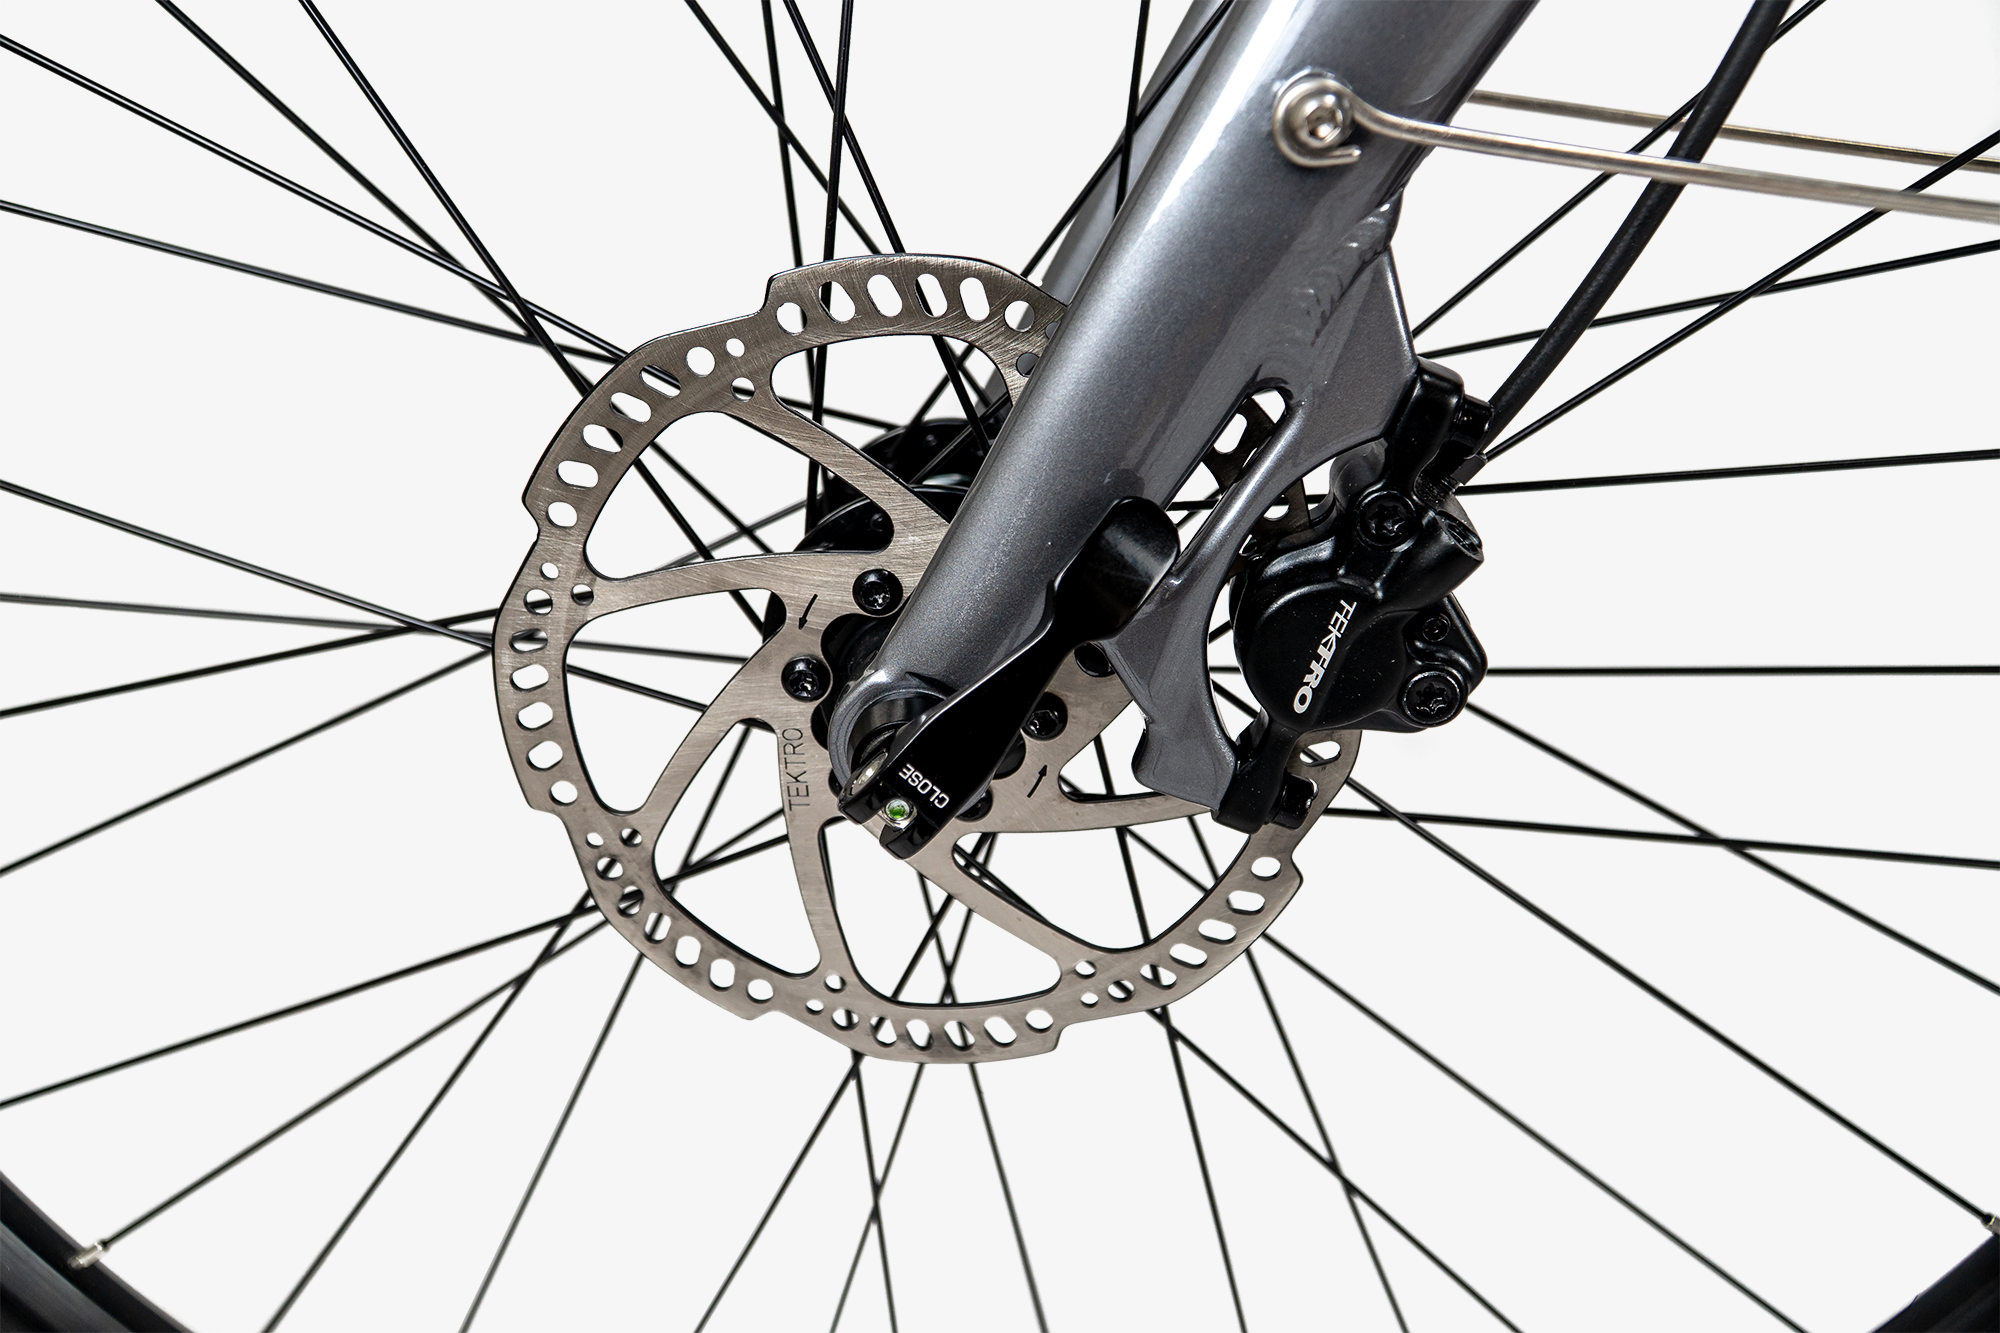 Tektro Hydraulic disc brakes on the front of the Priority Embark electric bike